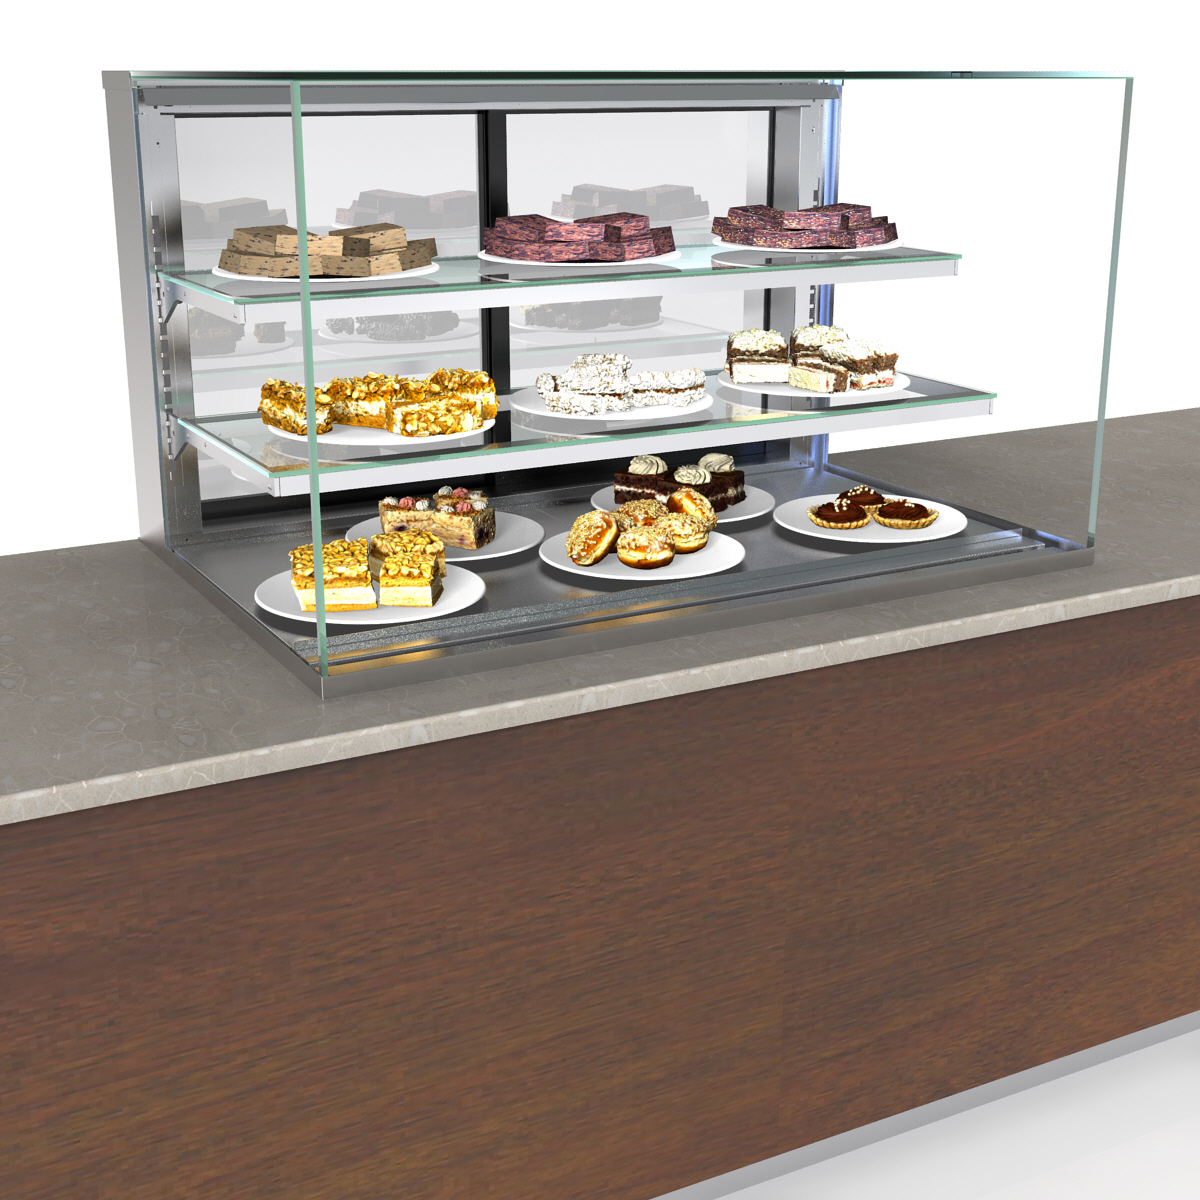 Structural Concepts NE3627DSV display case, non-refrigerated, slide in counter